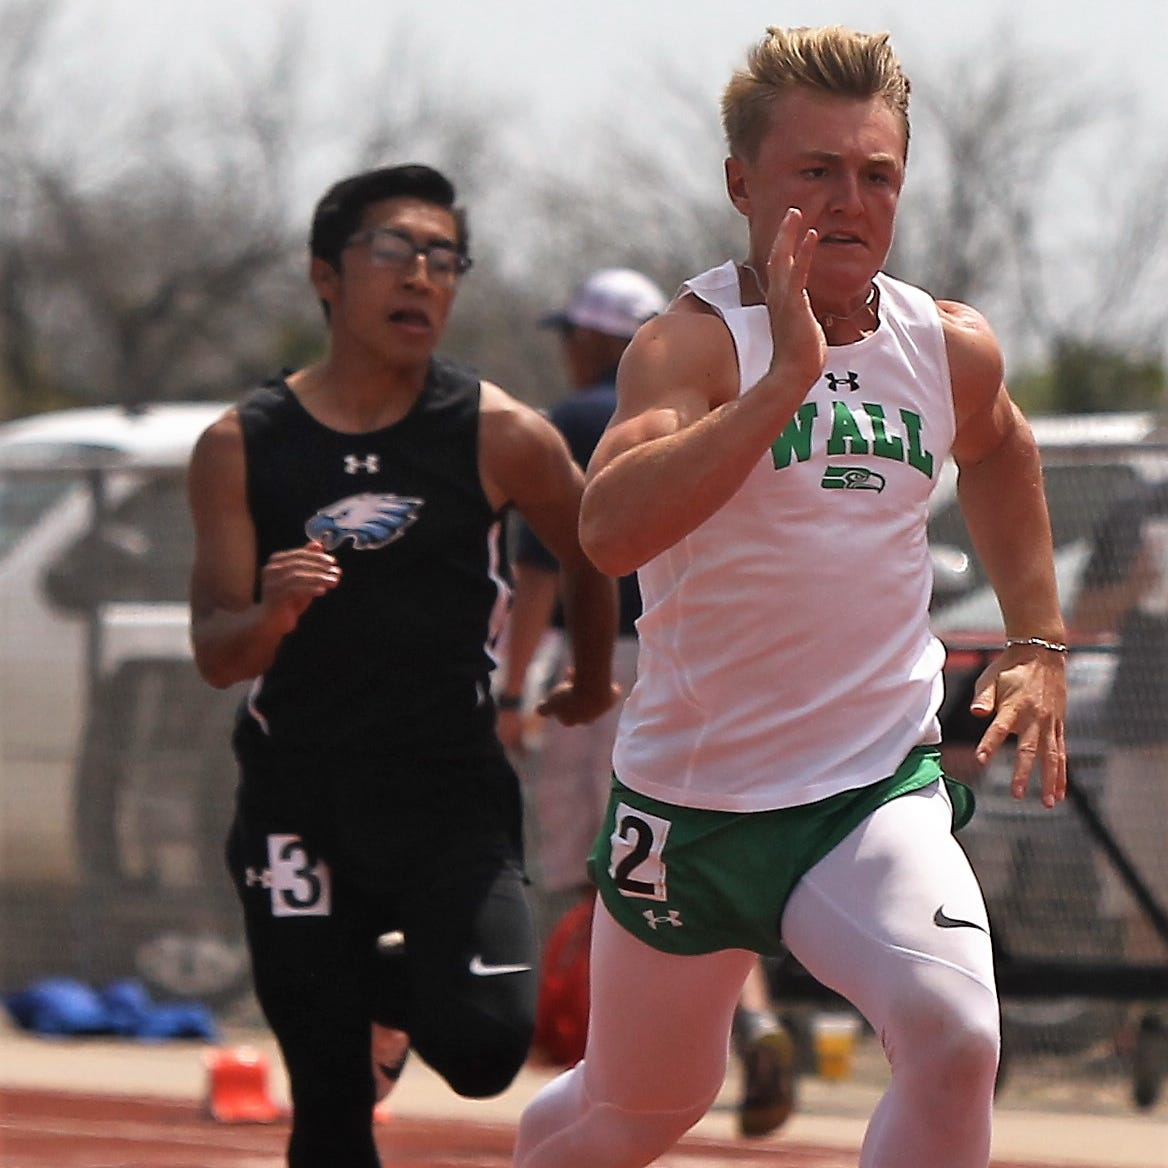 DISTRICT TRACK: Wall sweeps team titles in 4-3A